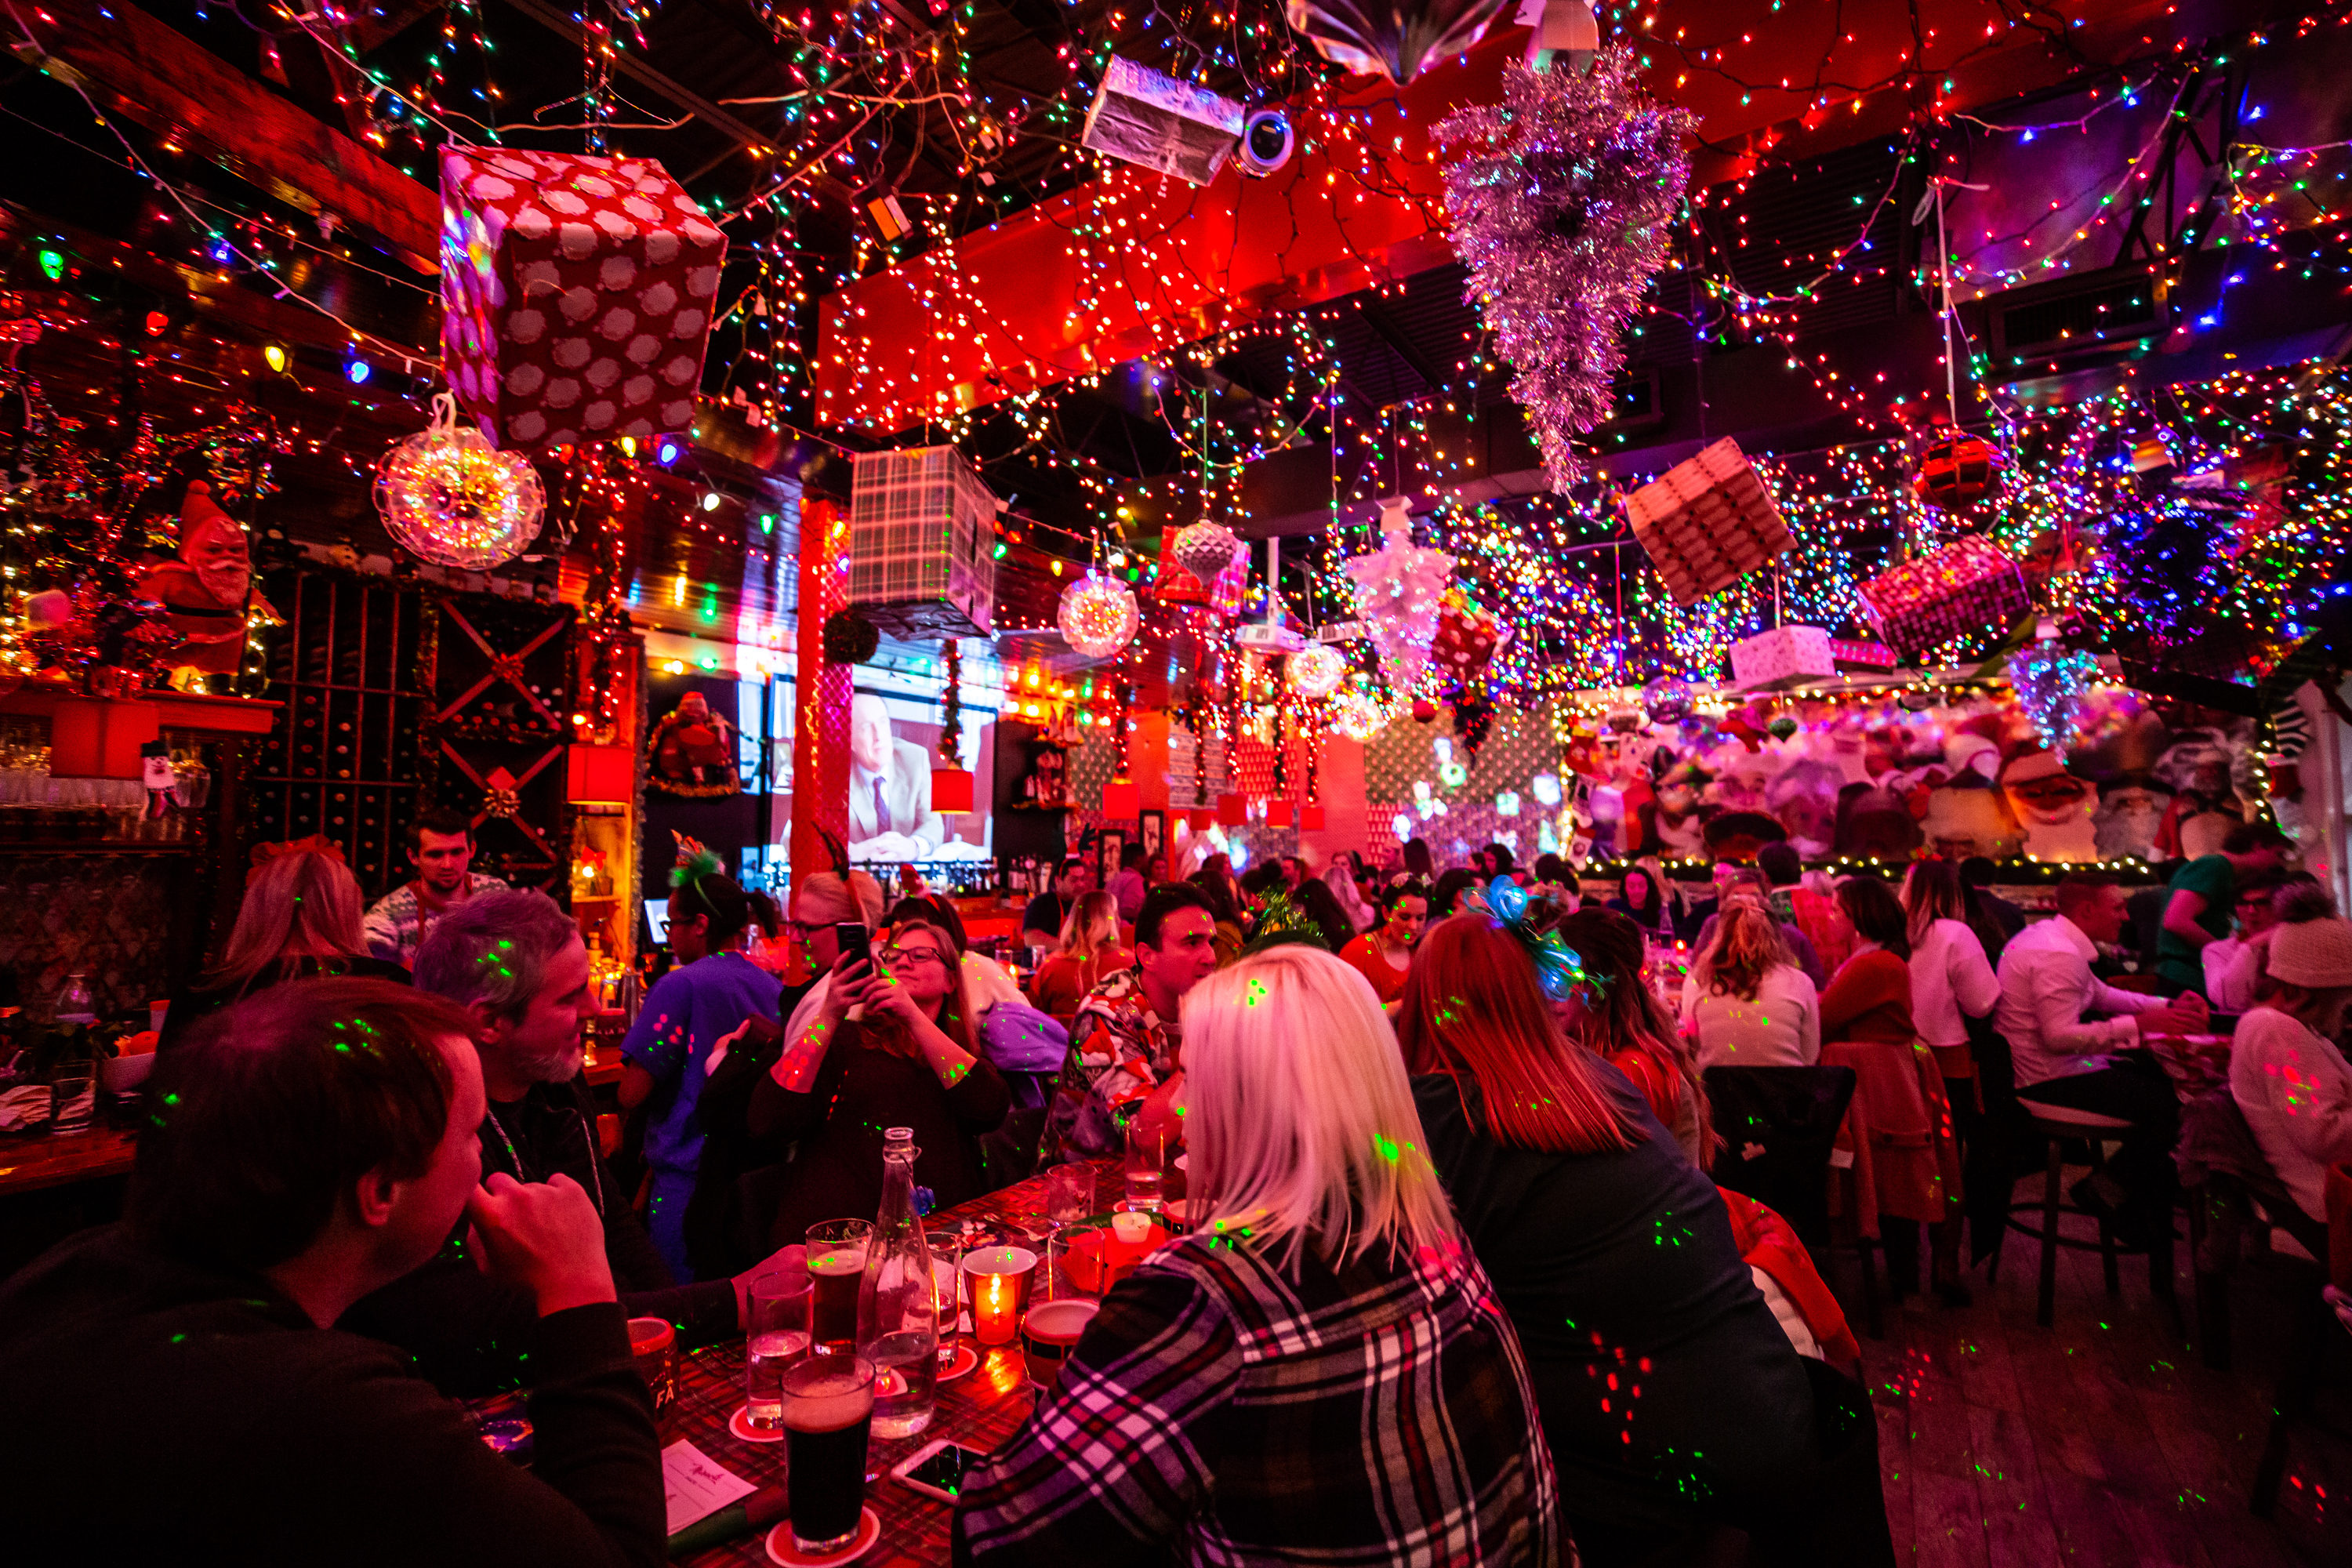 A bright light-filled bar with kitschy Christmas decorations everyone and tons of people